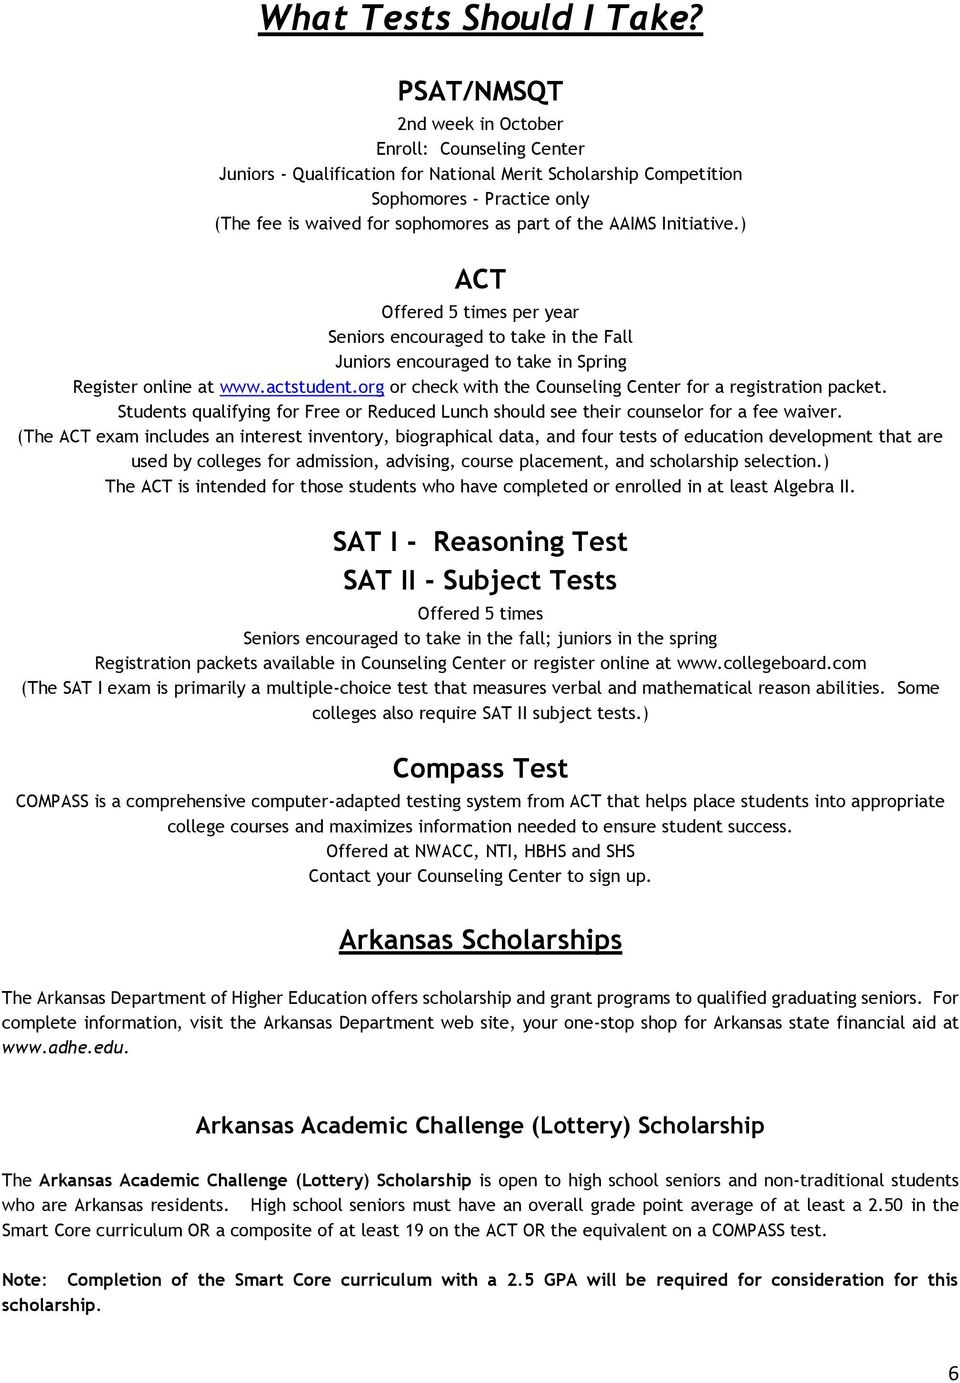 AAIMS Initiative.) ACT Offered 5 times per year Seniors encouraged to take in the Fall Juniors encouraged to take in Spring Register online at www.actstudent.